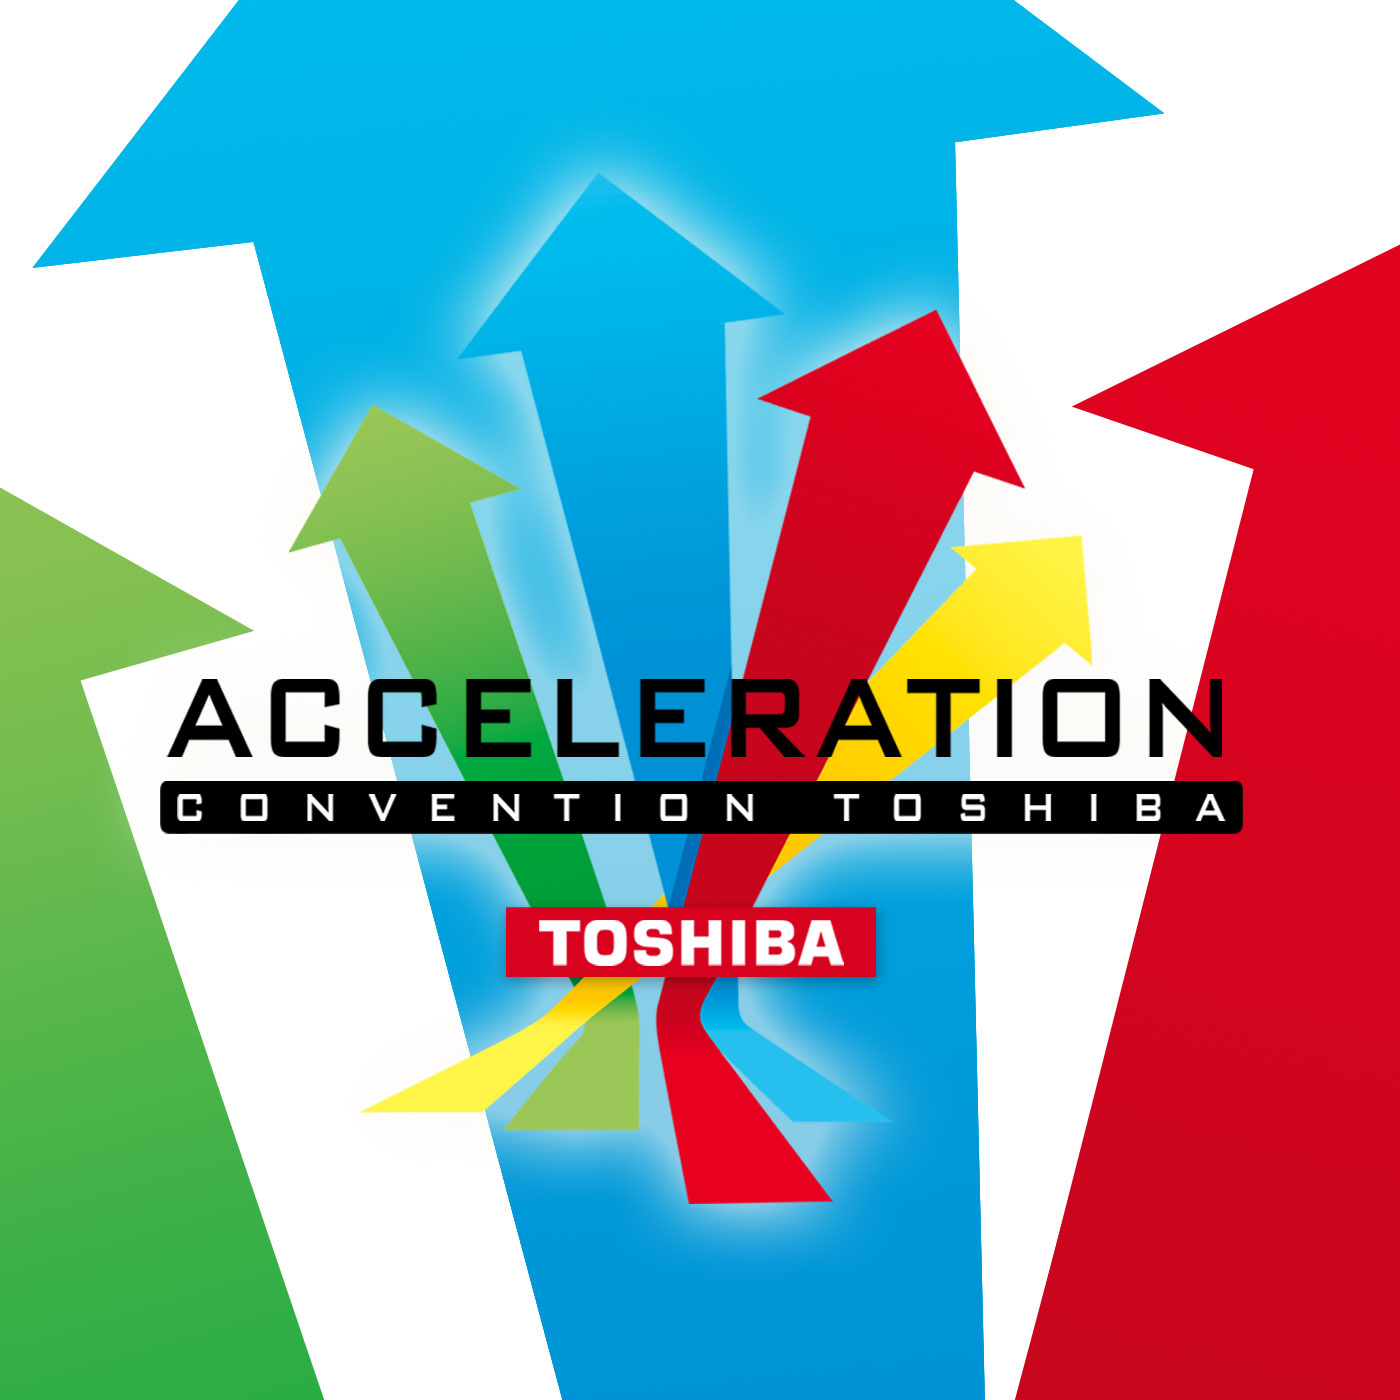 Toshiba Convention